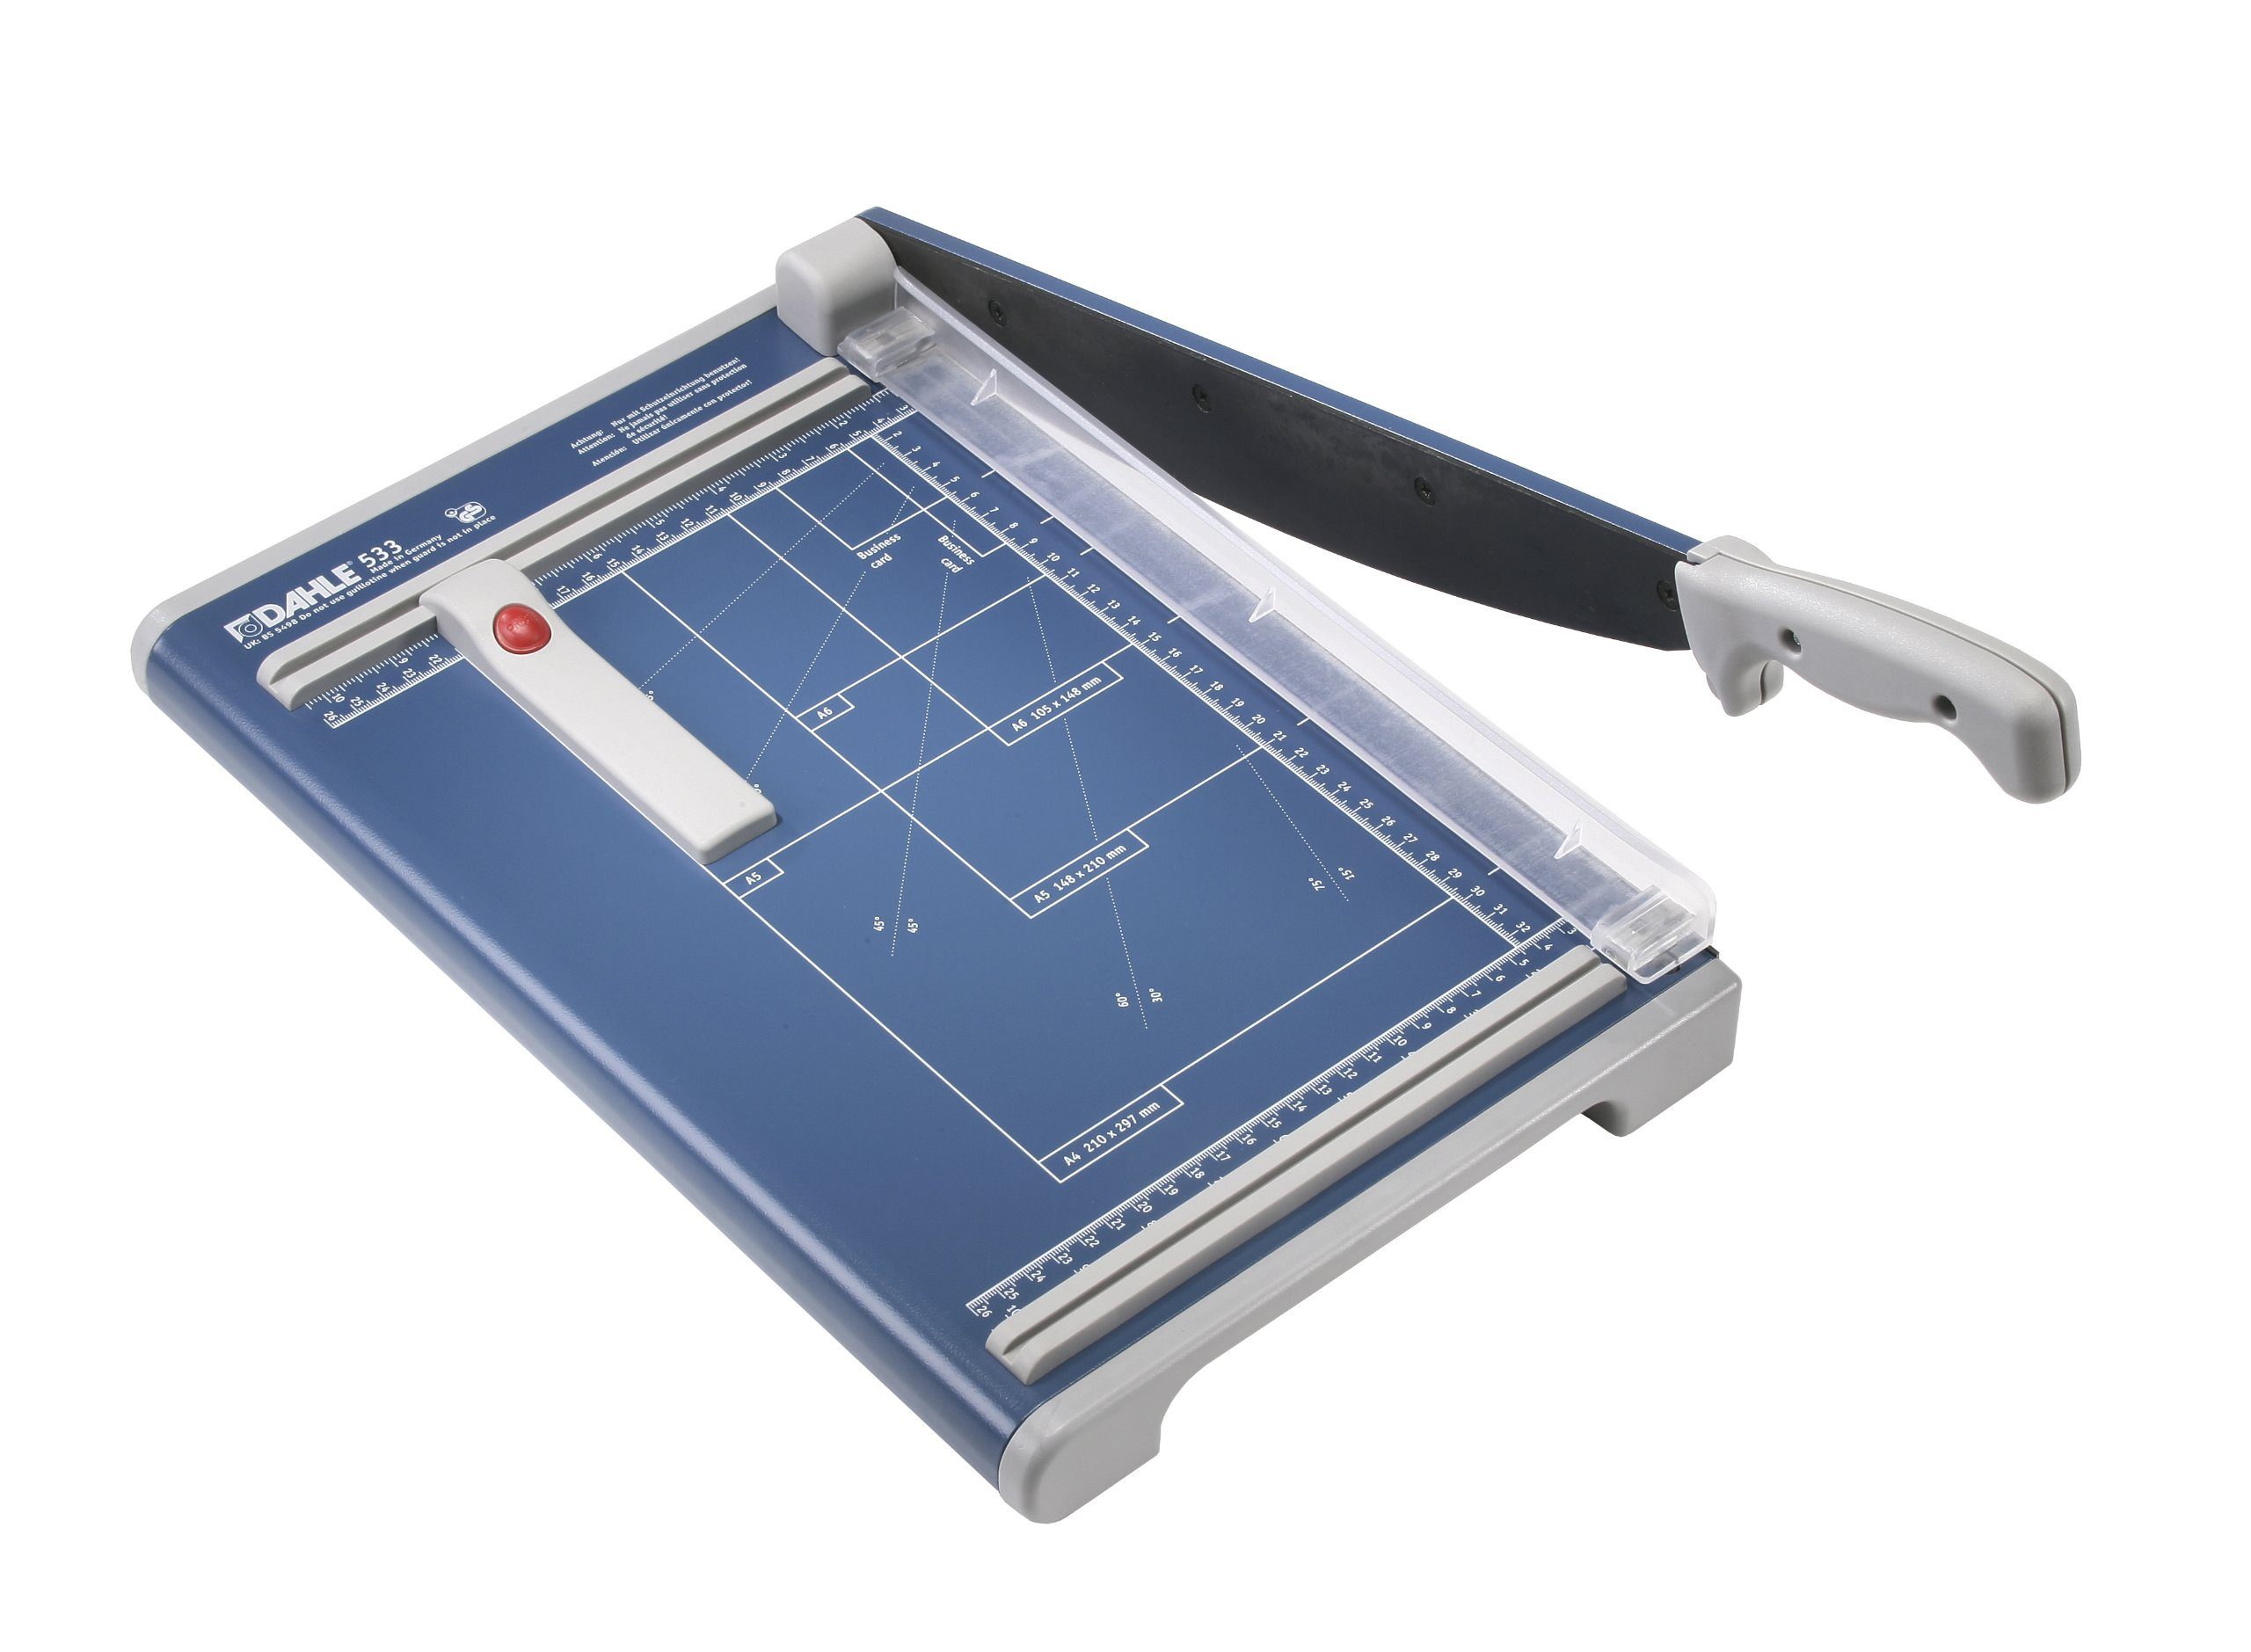 Dahle 533 Professional Guillotine Trimmer, 13-3/8'' Cut Length, 15 Sheet Capacity, Self-Sharpening, Manual Clamp, German Engineered Cutter by Dahle